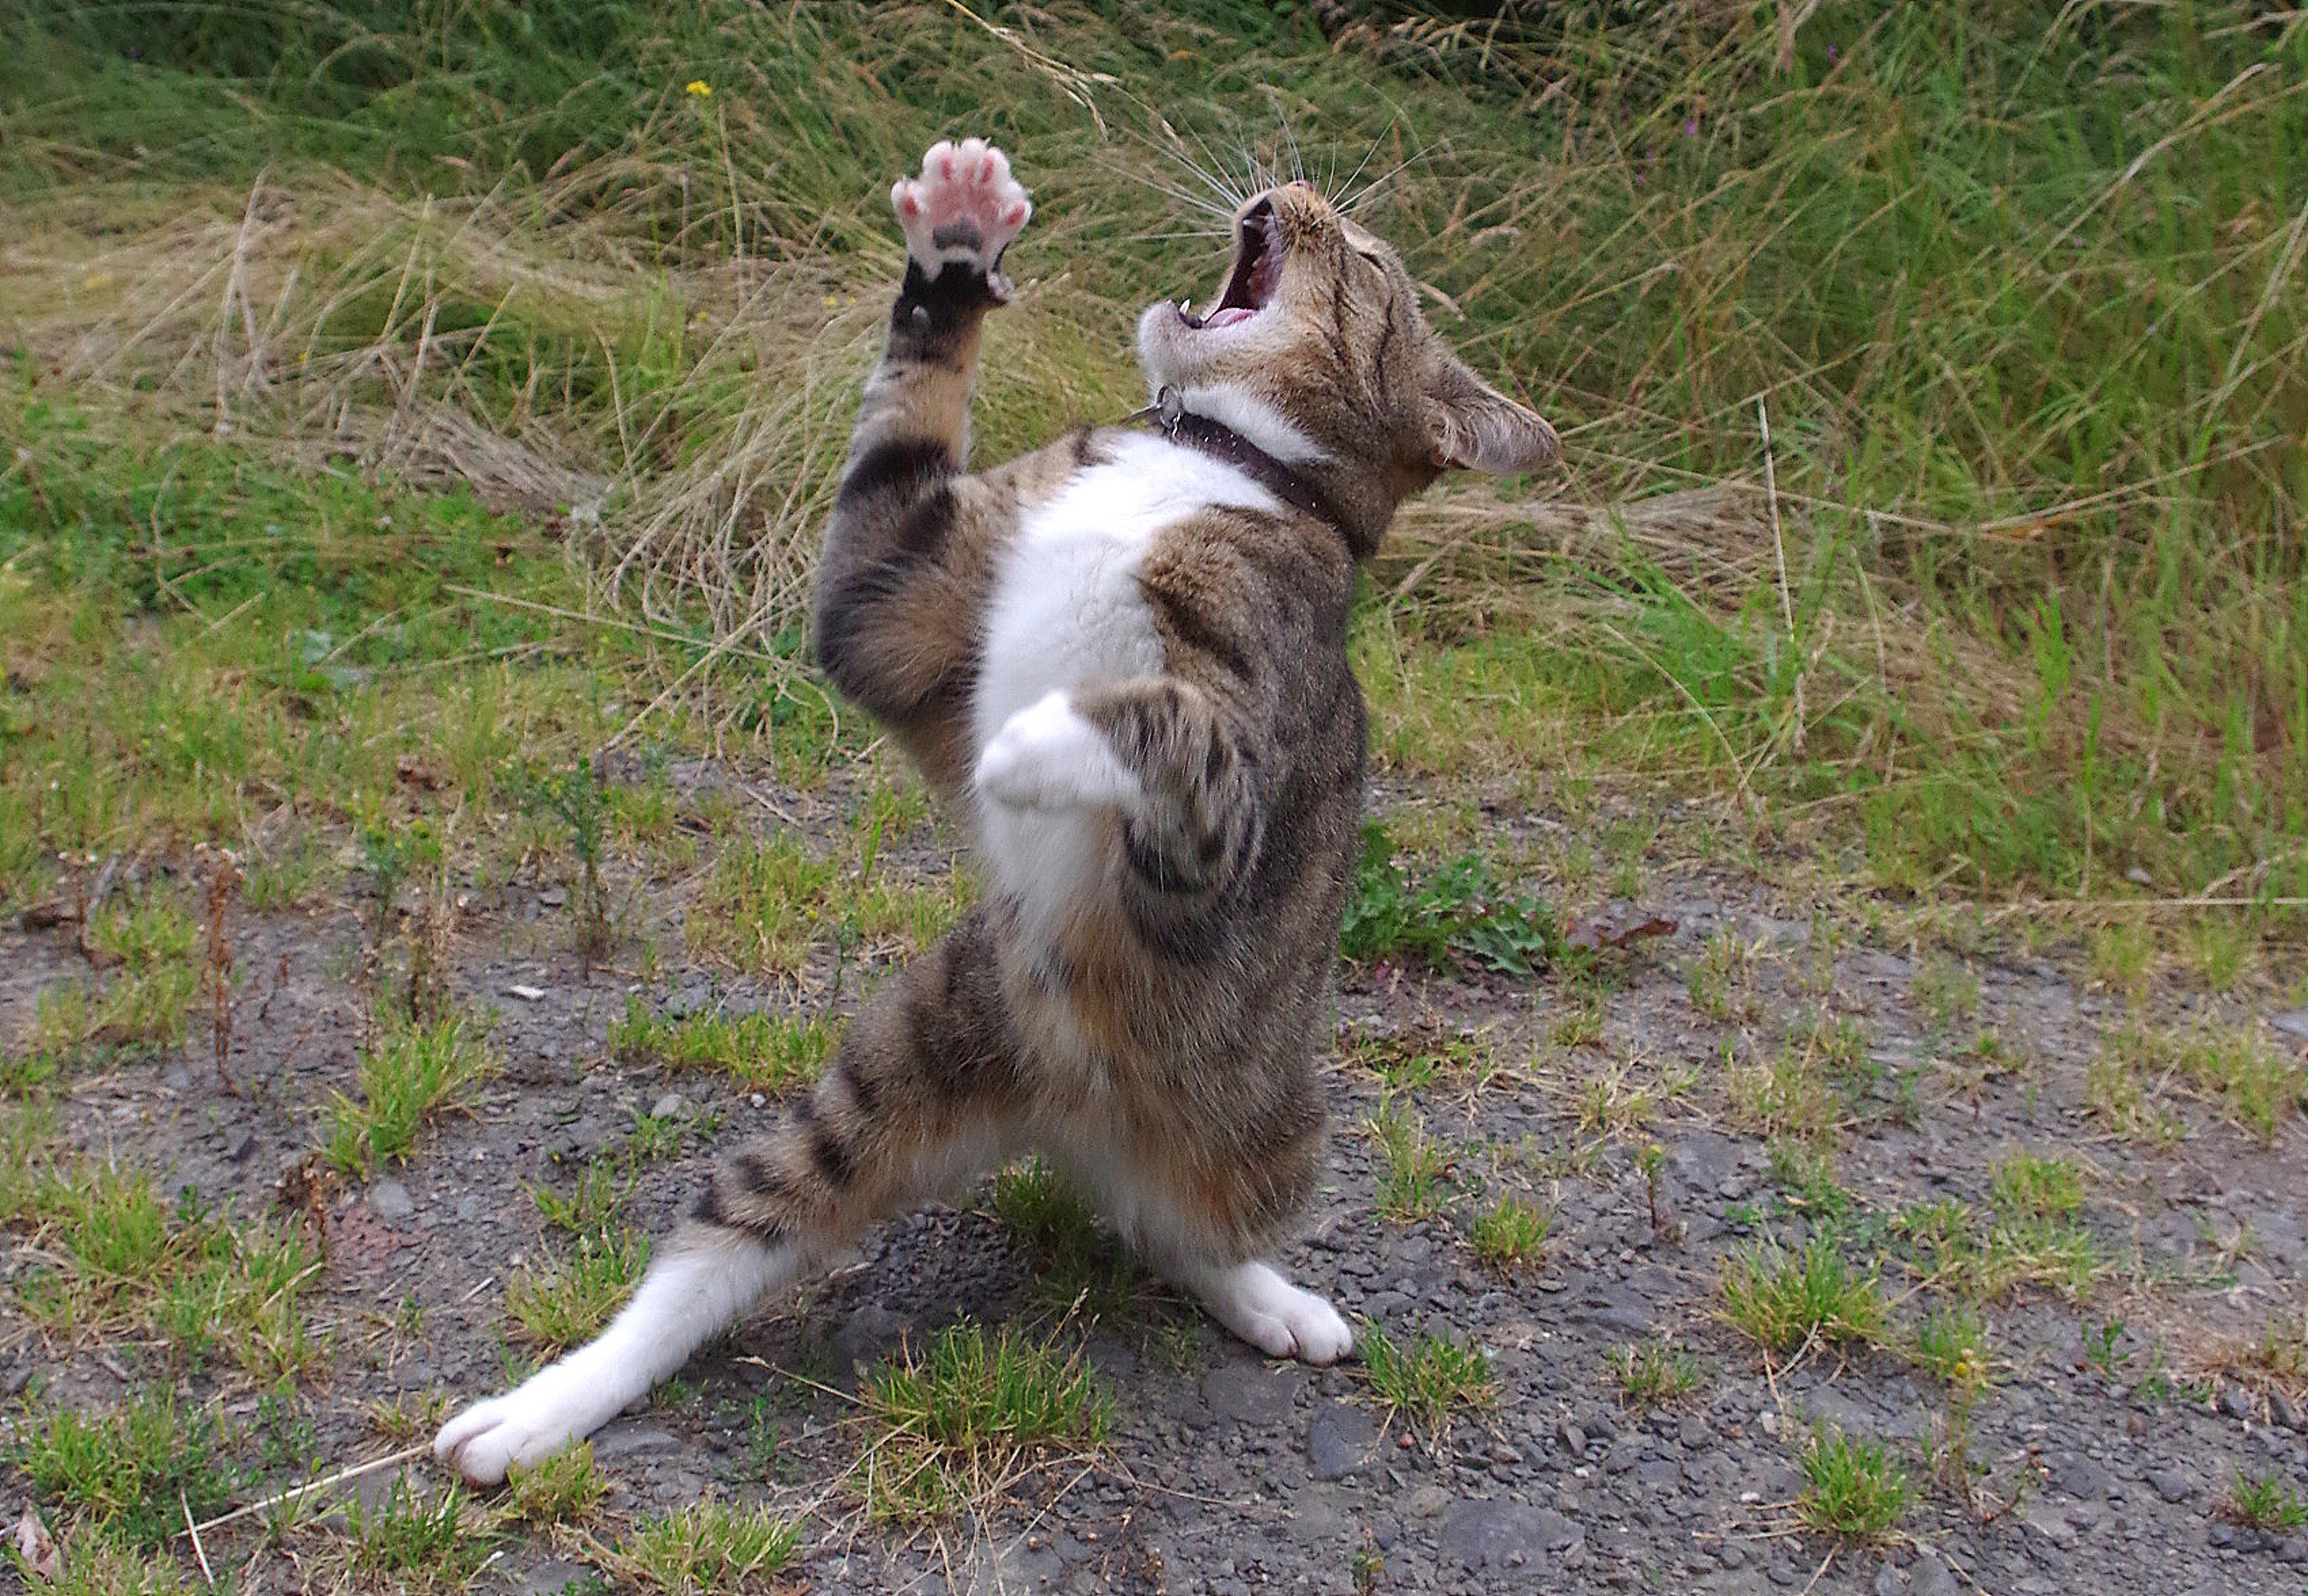 A small cat is standing erect, face tilted towards the sky, seemingly cursing or praising god, depending on your perspective.